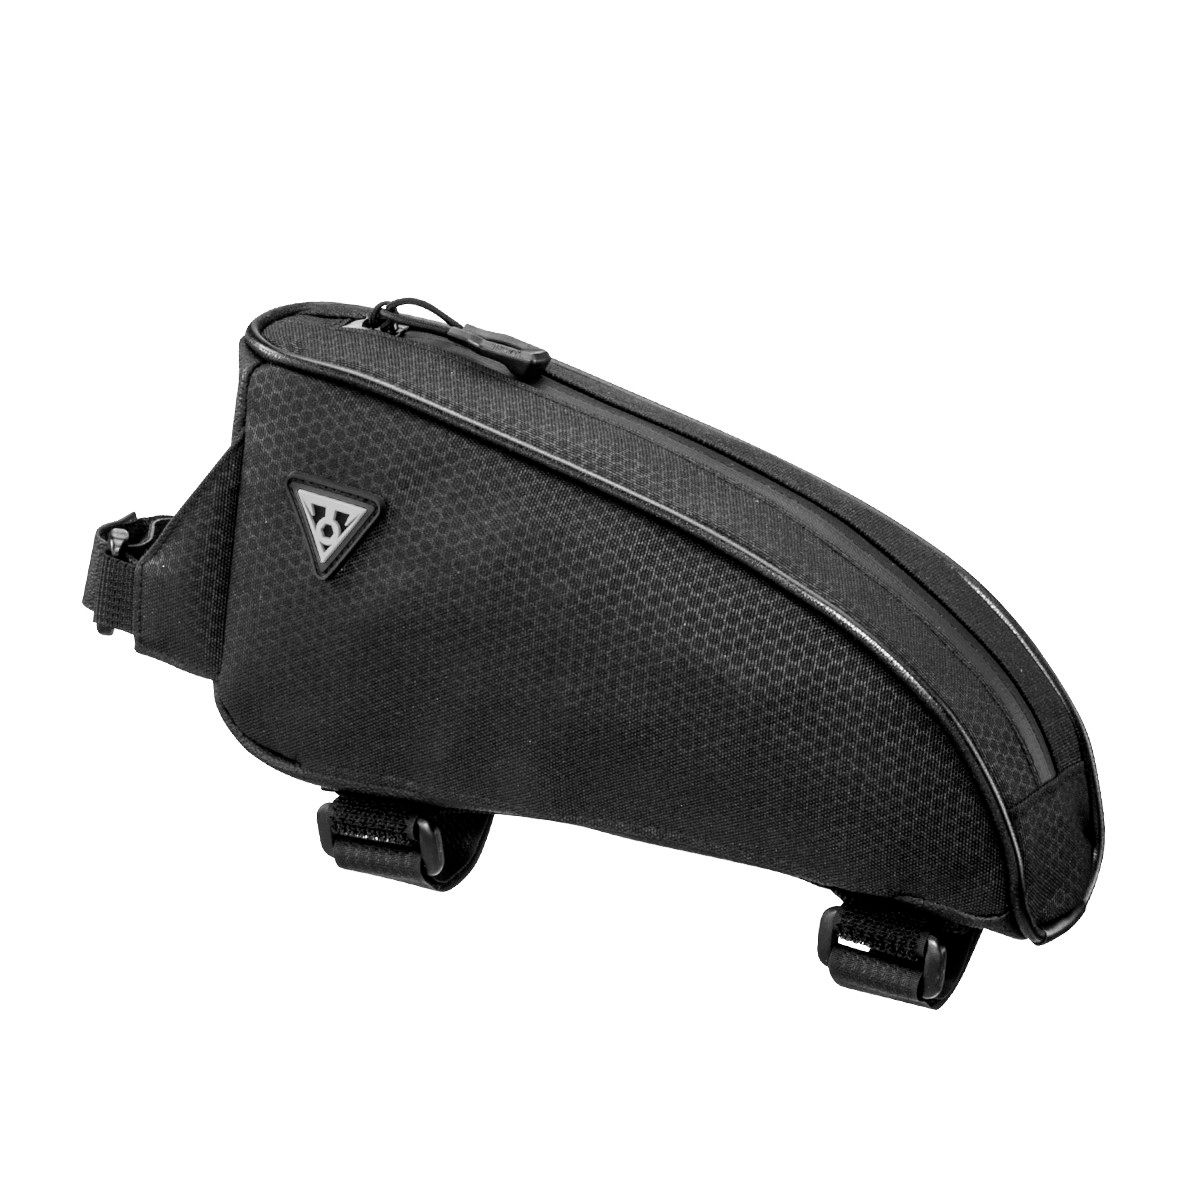 Topeak TOPLOADER bicycle frame bag | Frame bags